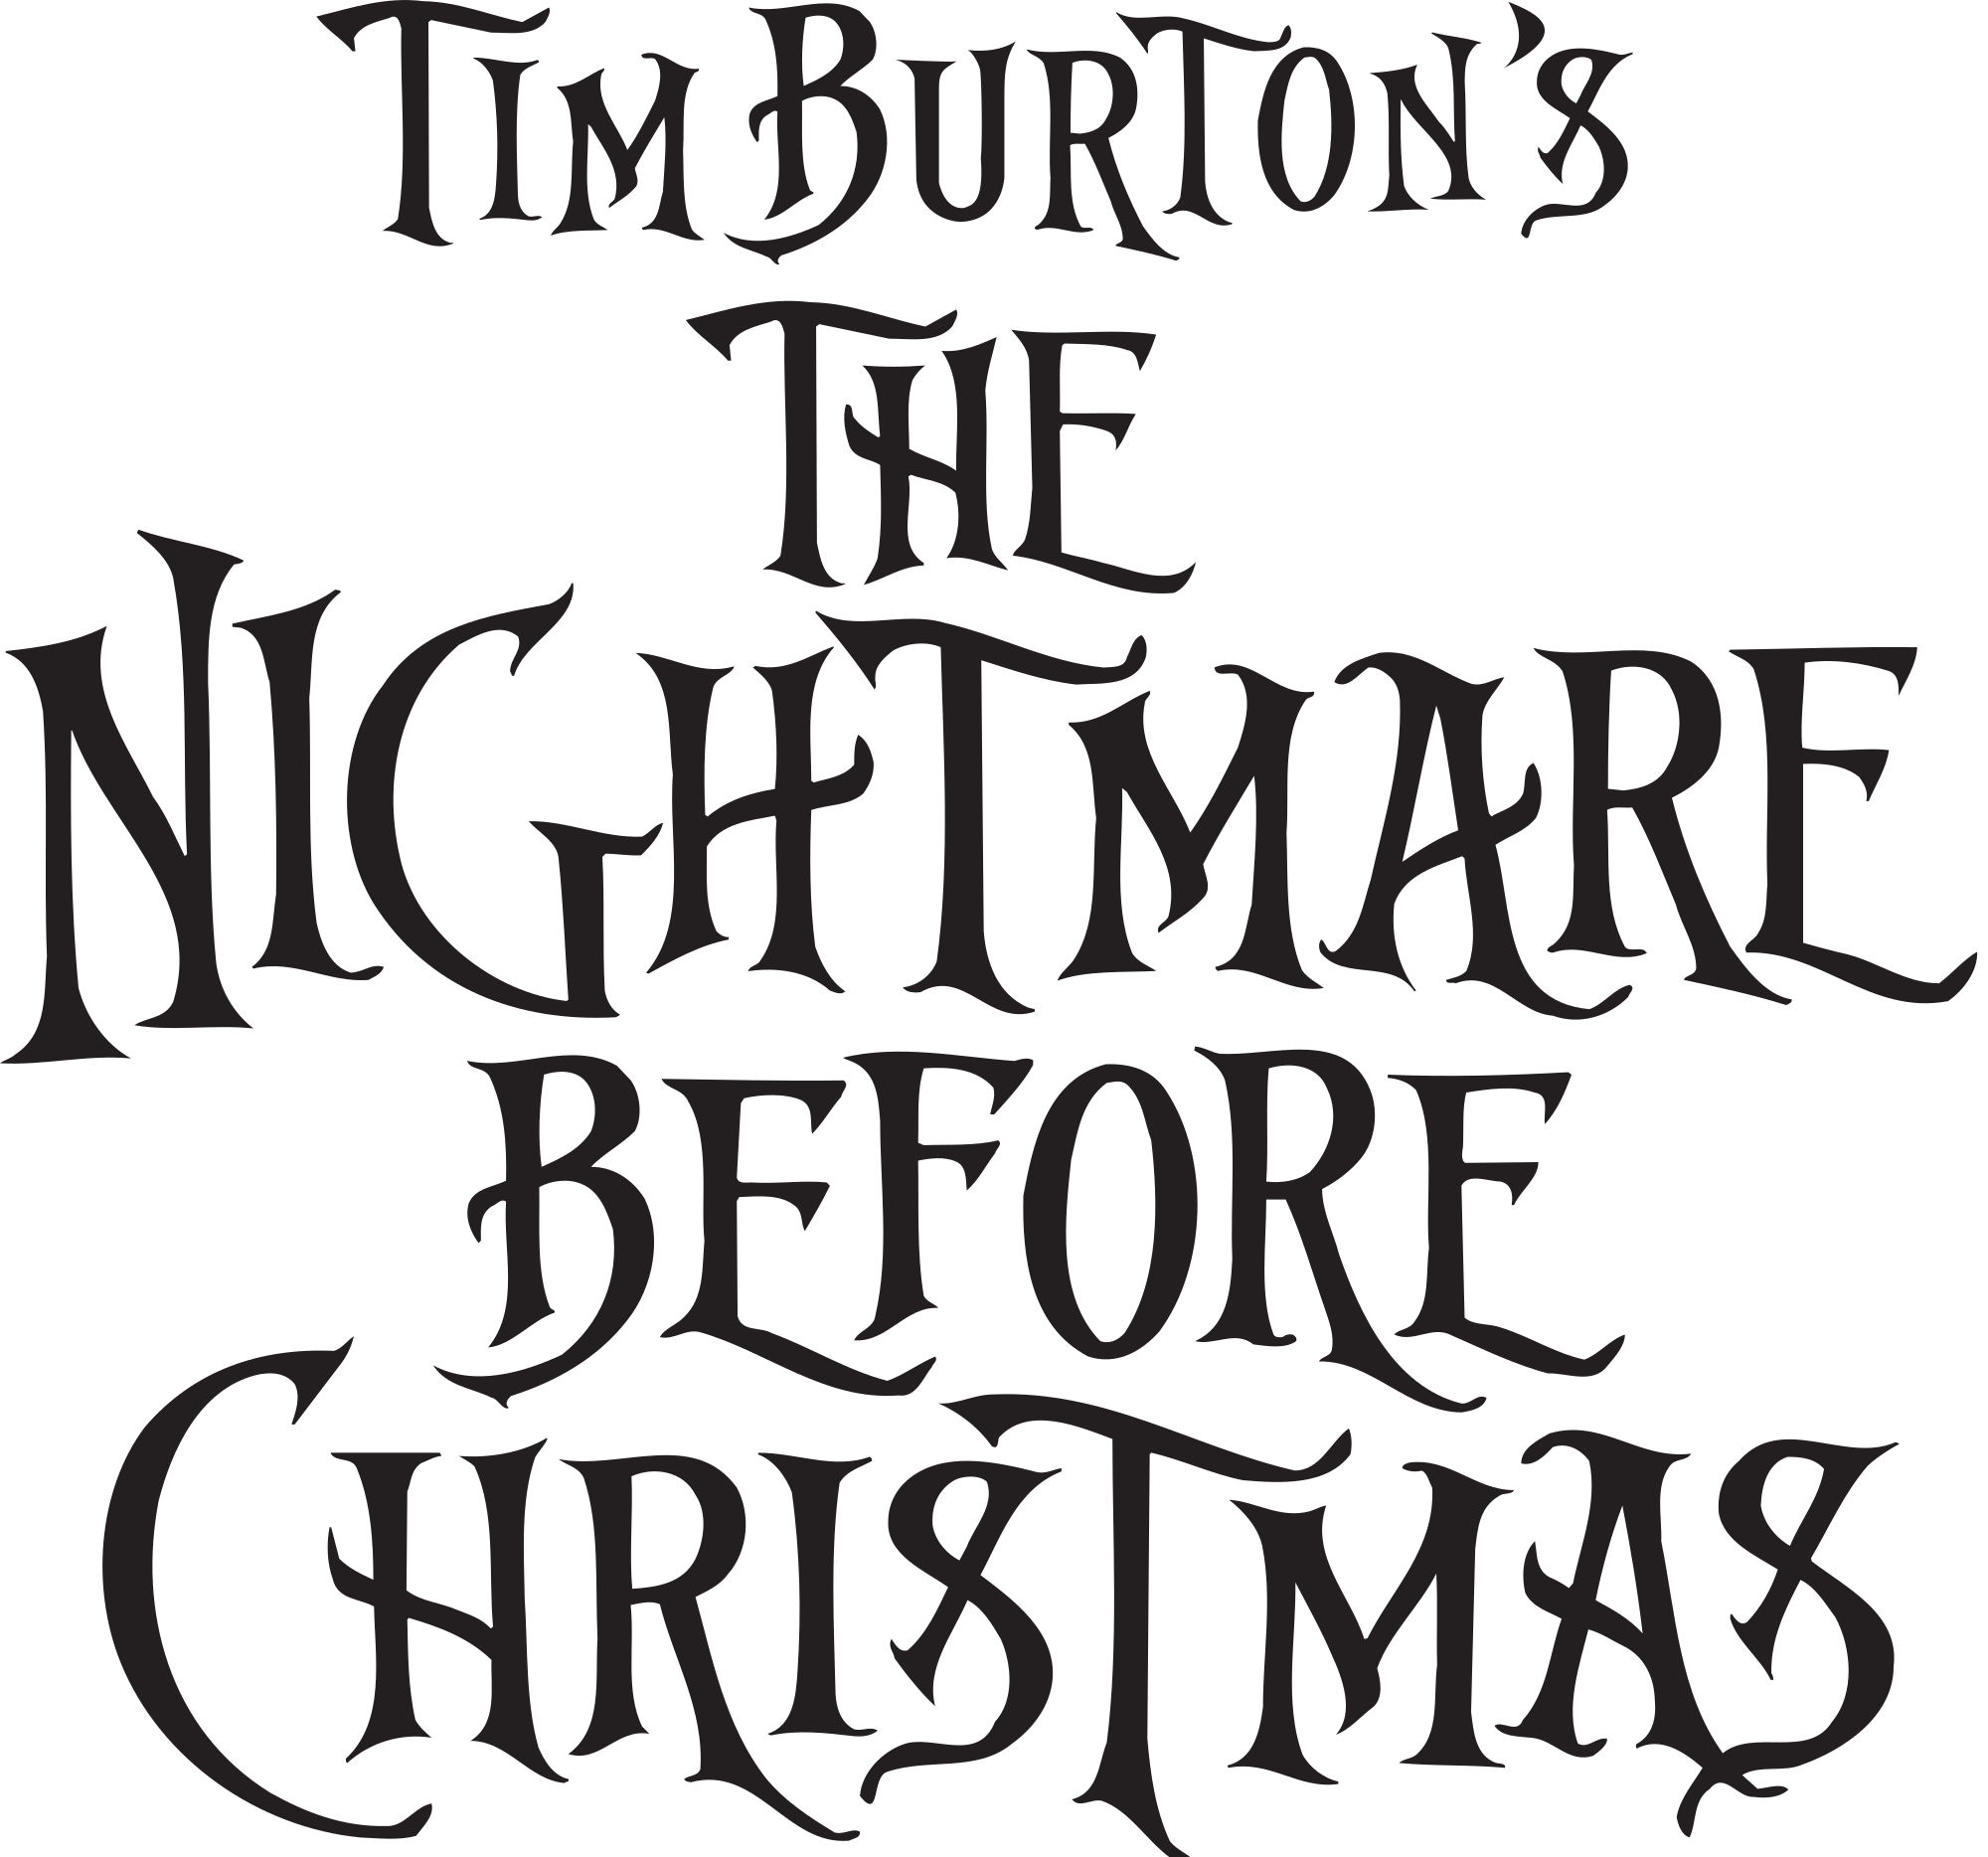 Nightmare before christmas png. File the chrstmas logo